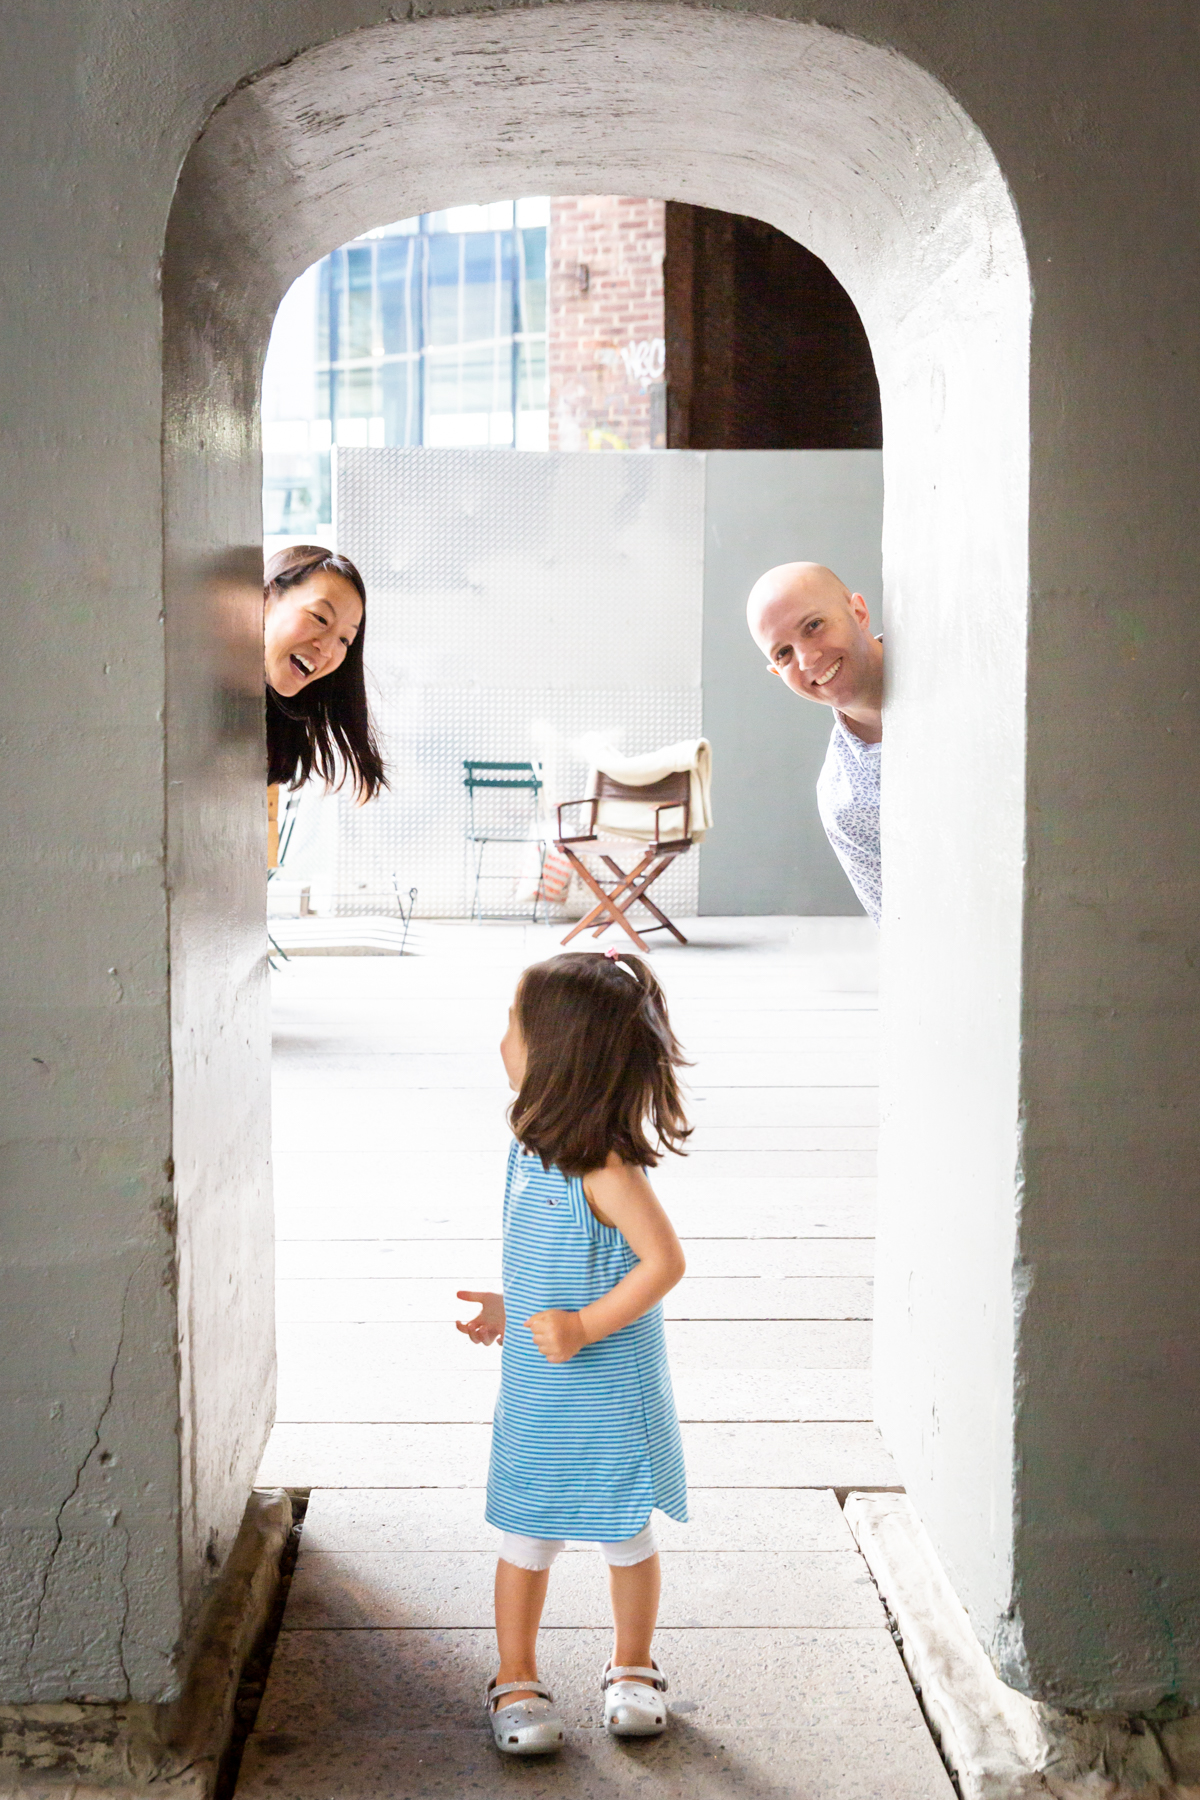 Parents playing peek-a-boo with little girl for an article on High Line family portrait tips